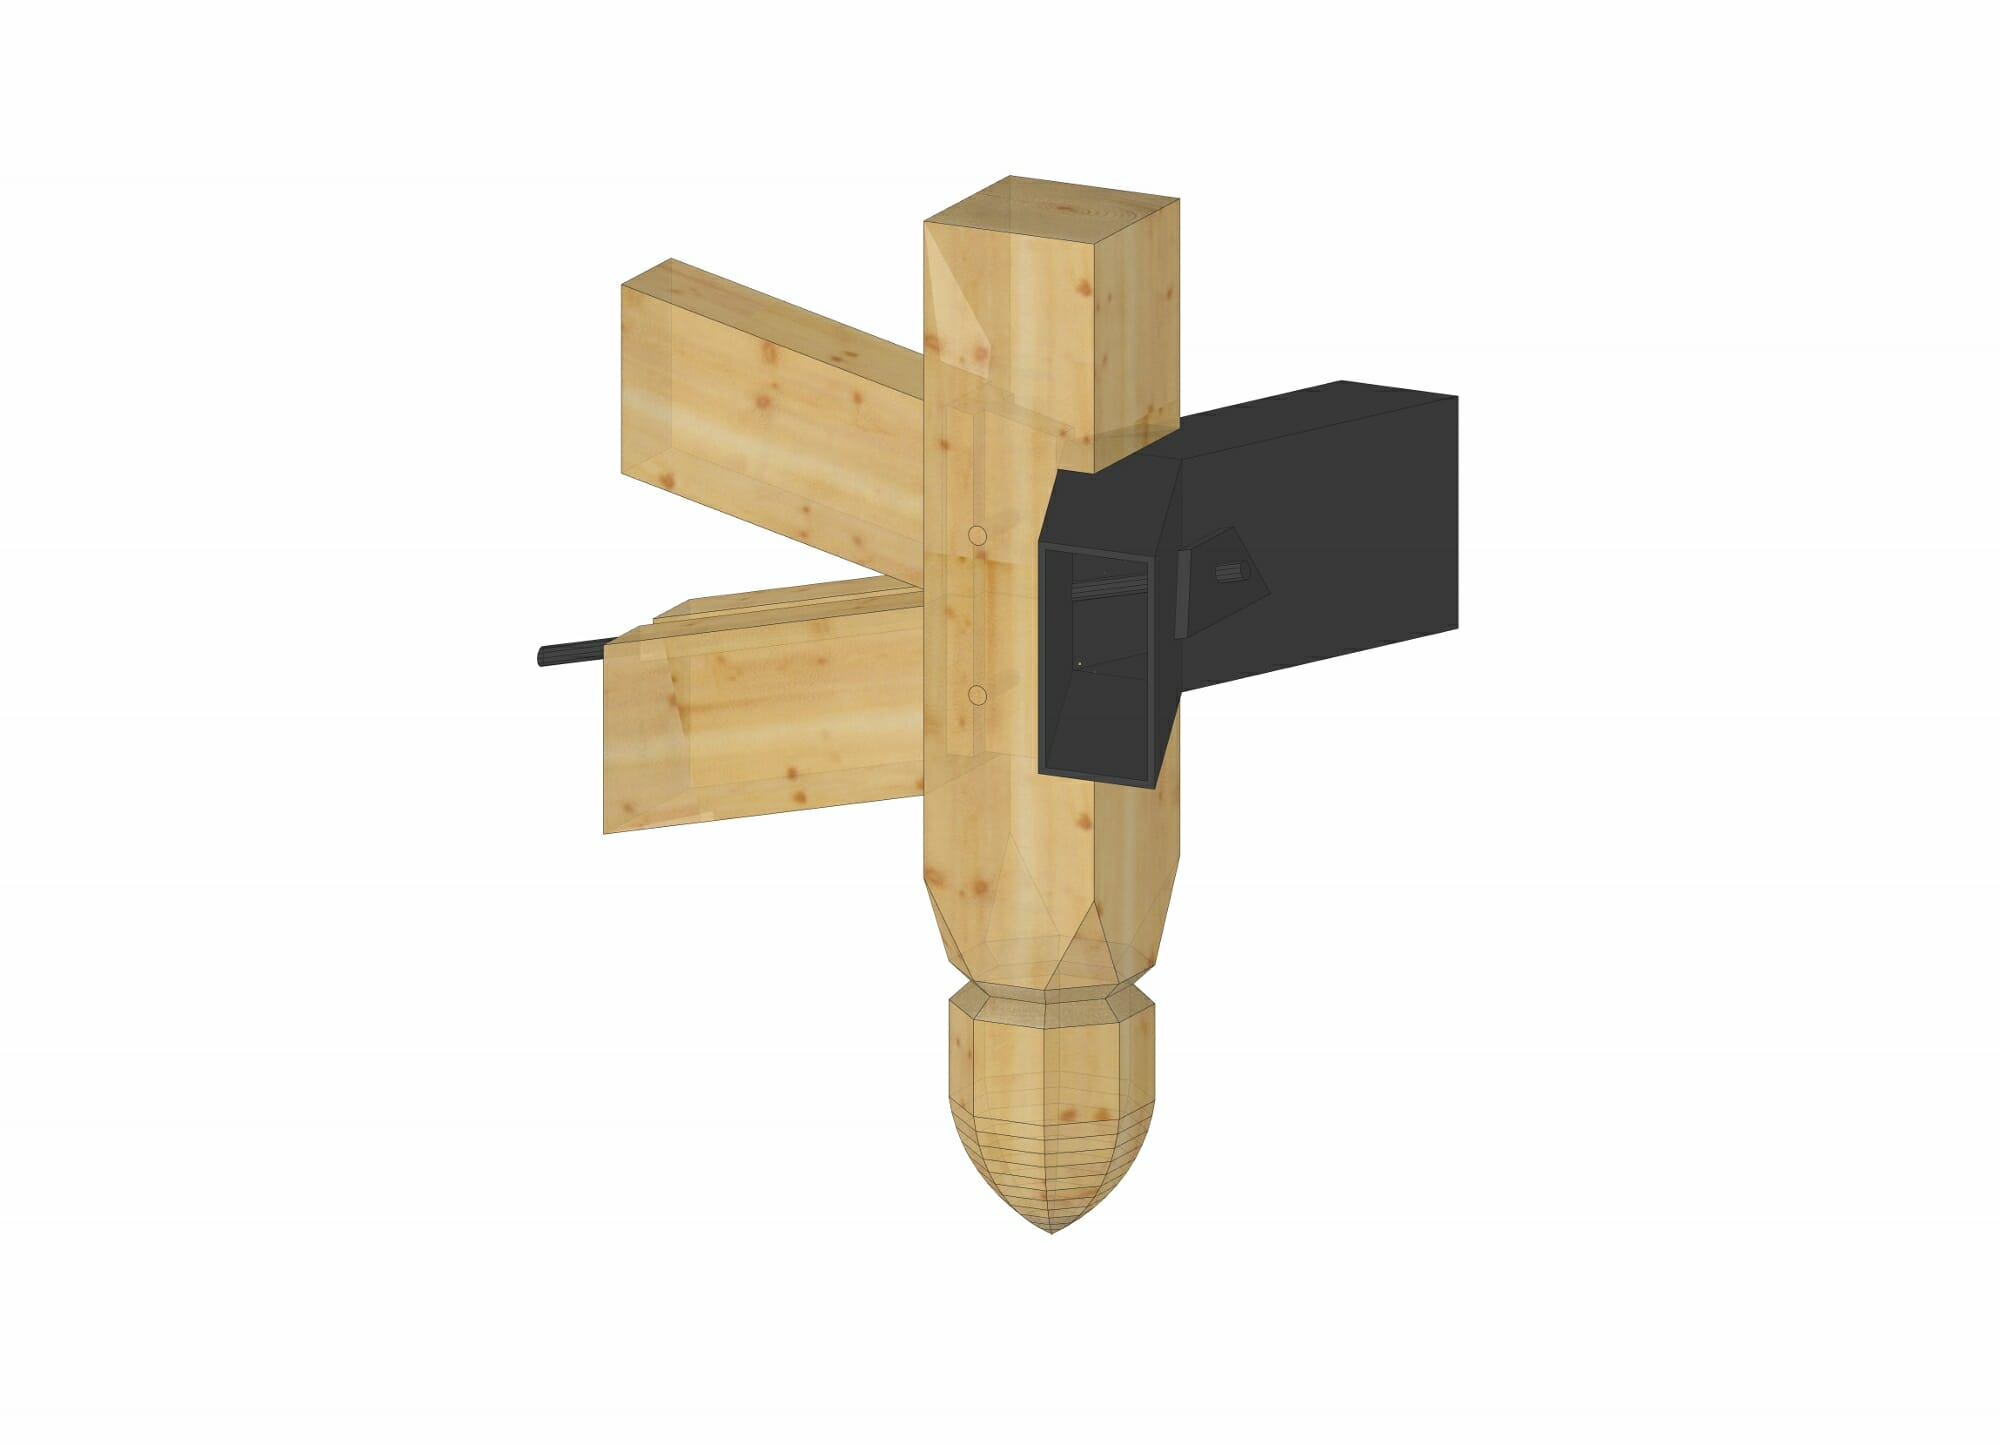 Timber frame joinery with steel connector plates for